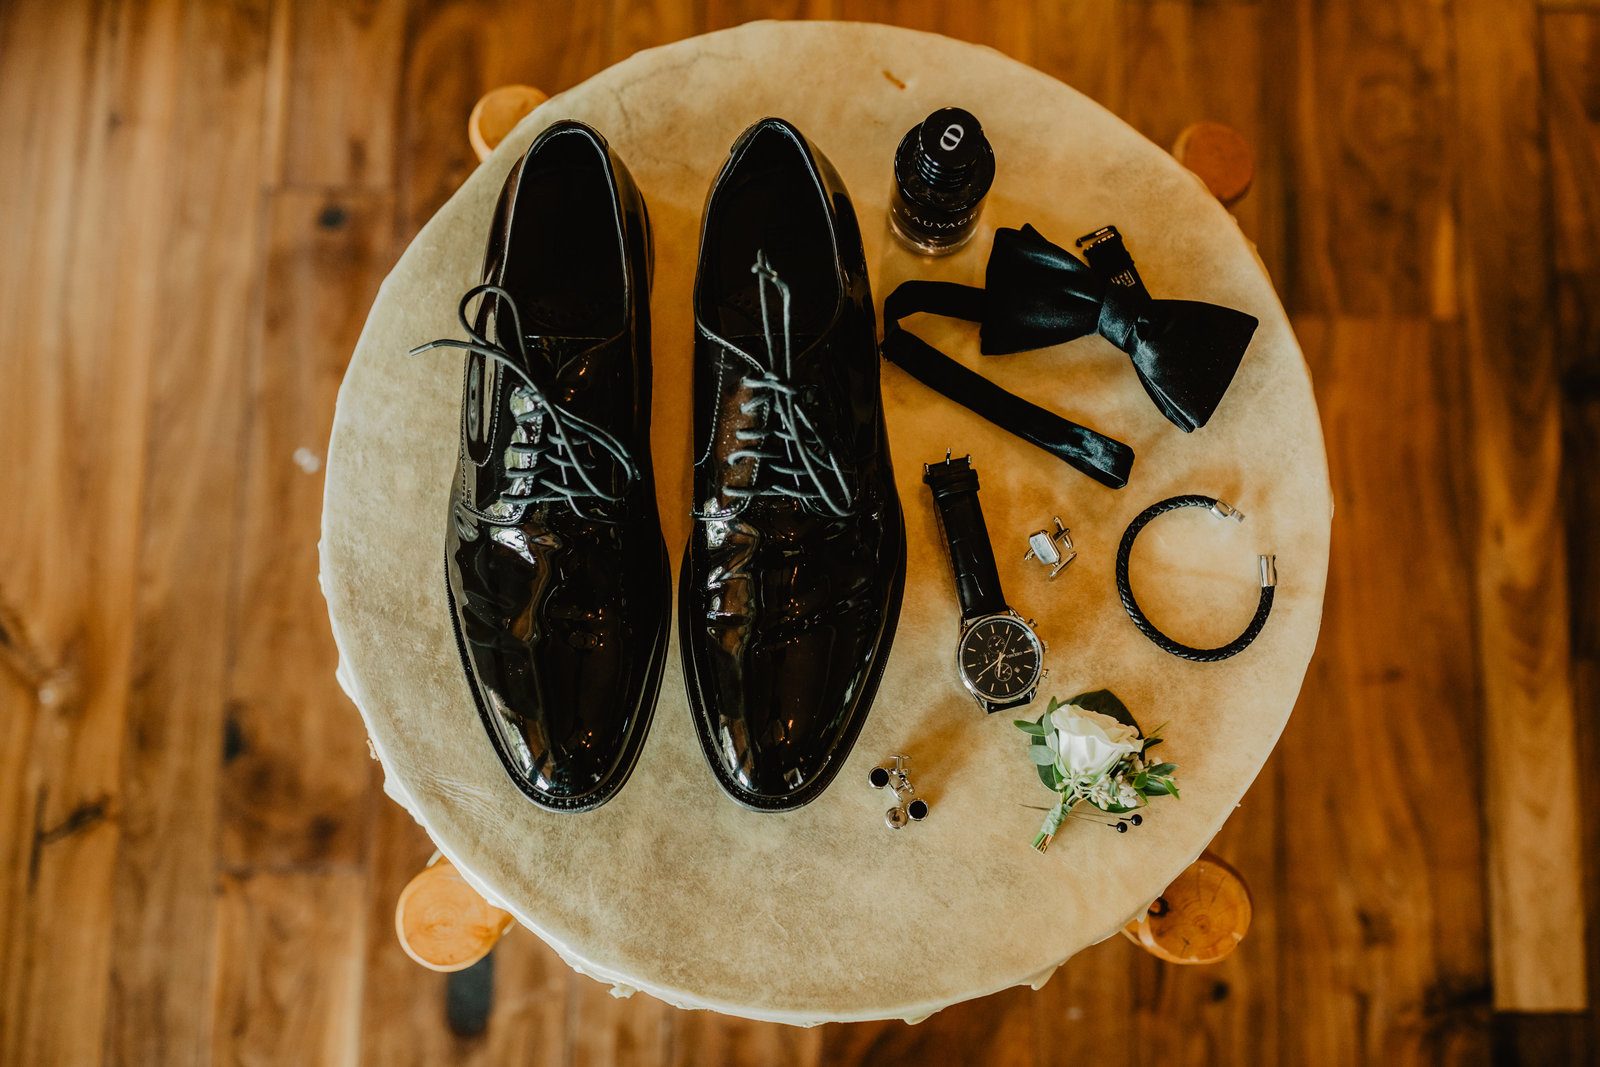 Groom details for a classic black tie wedding at Wind river